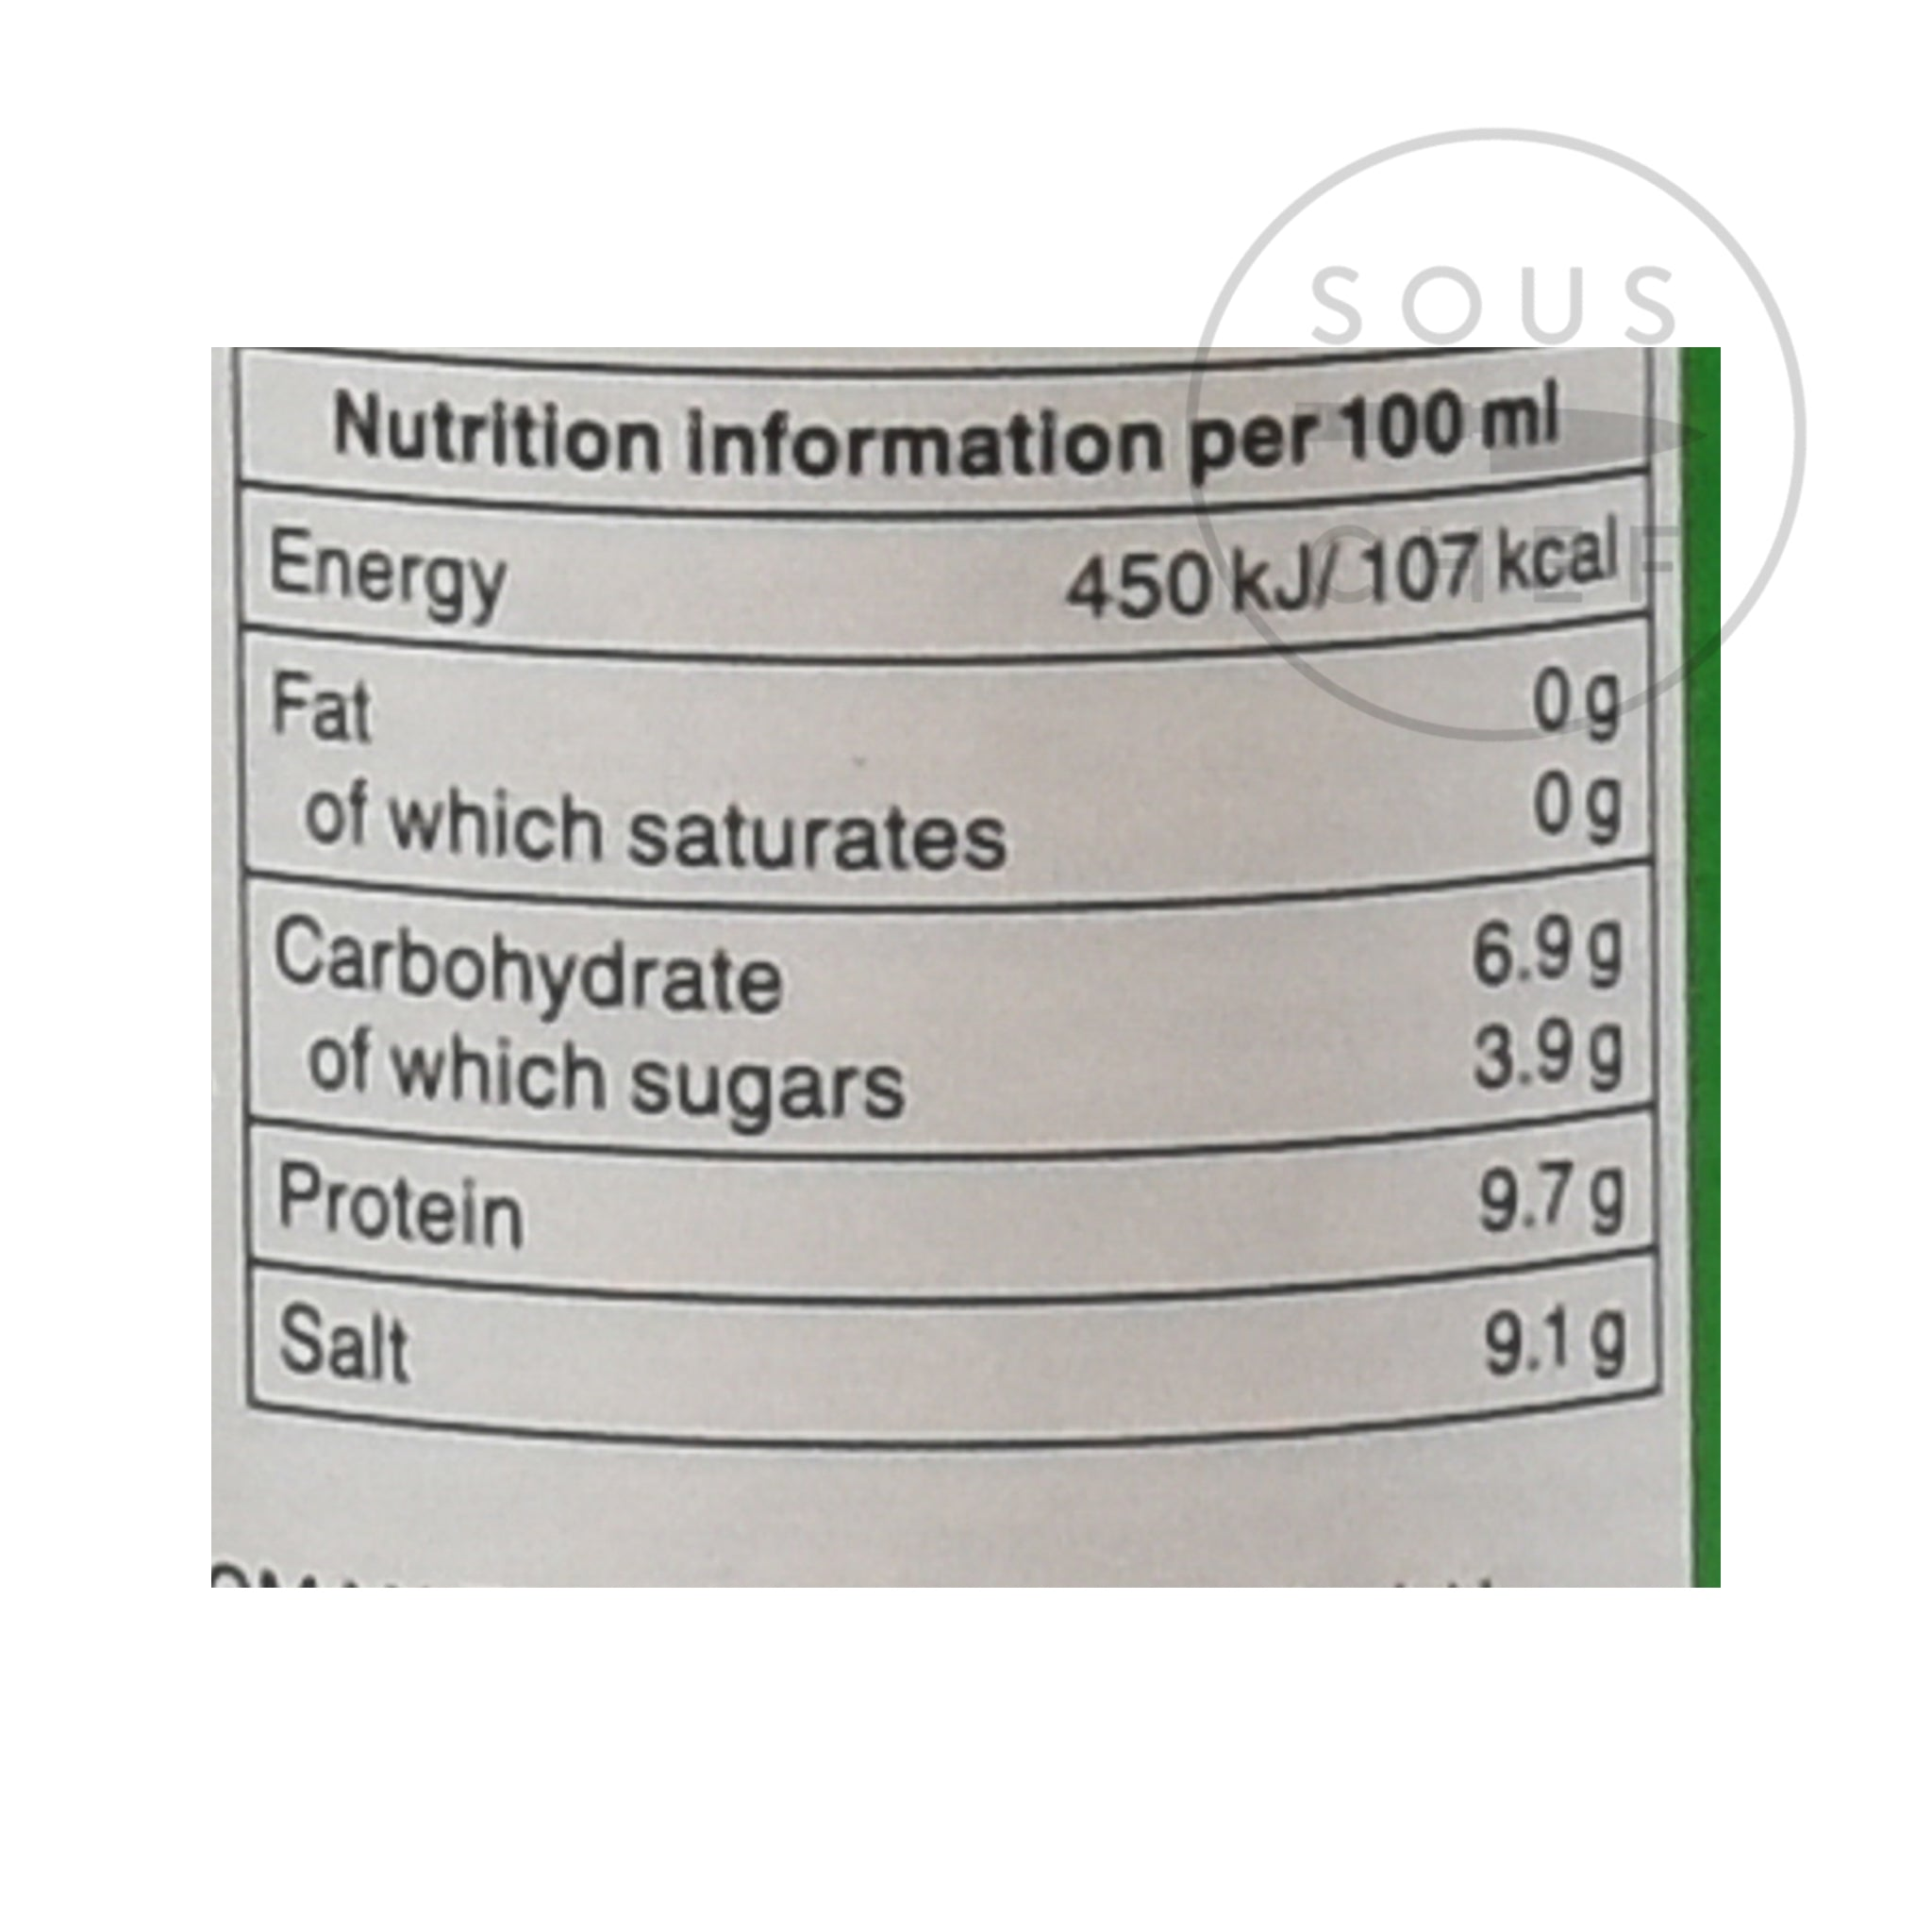 Kikkoman Soy Sauce - Less Salt 250ml nutritional information